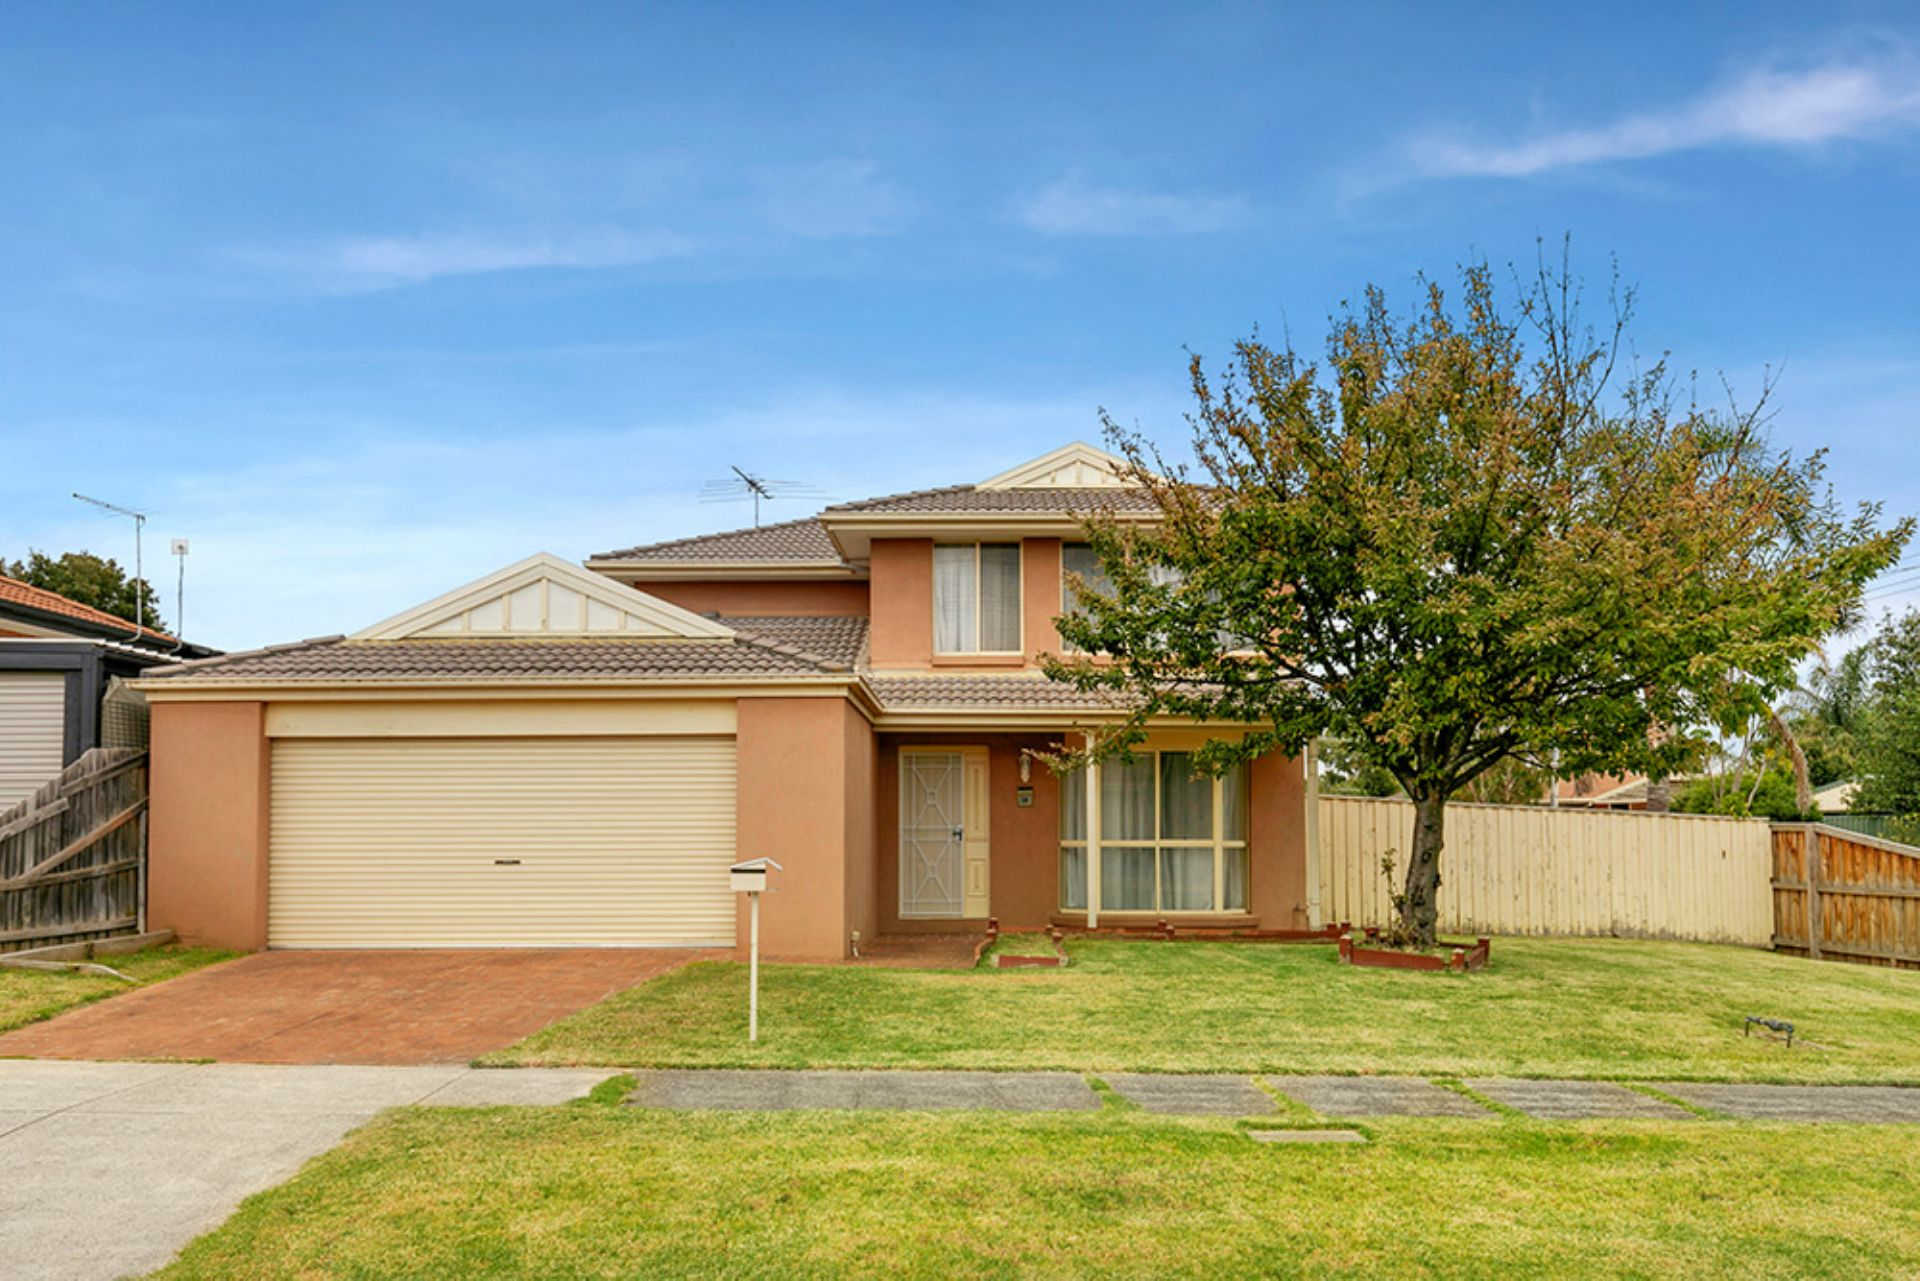 26 Allied Drive, CARRUM DOWNS, VIC, 3201 - Image